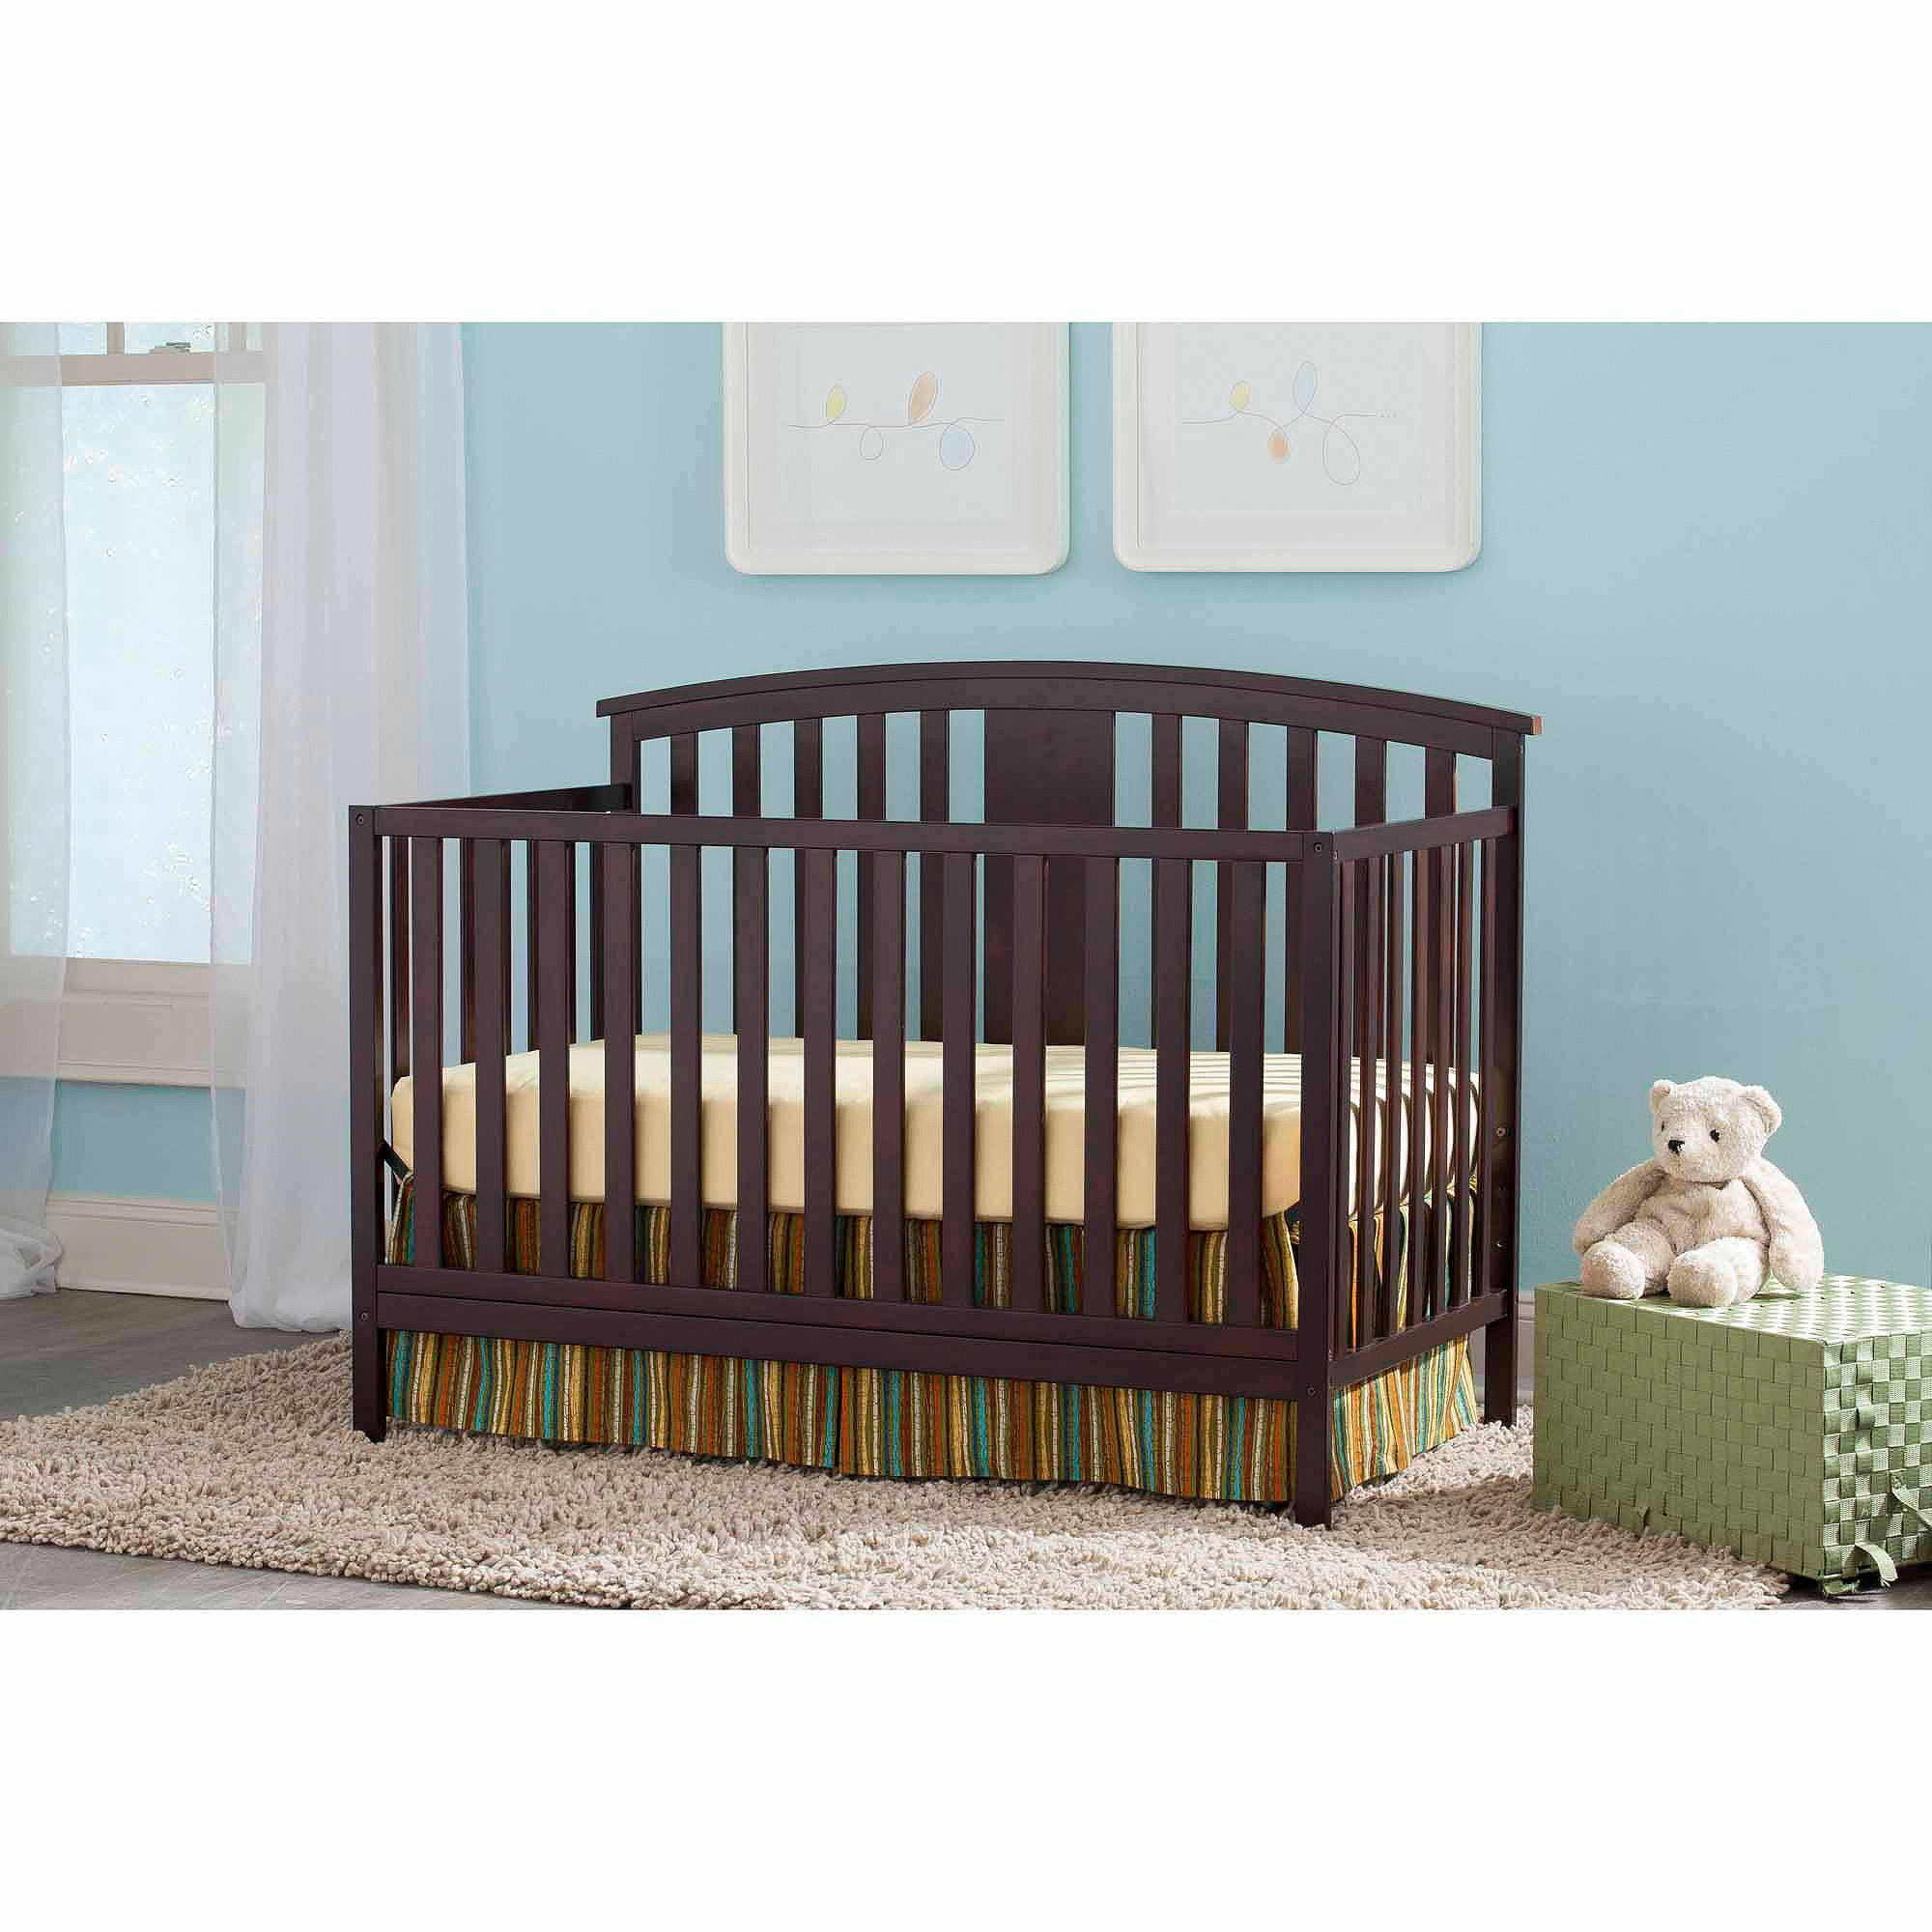 Storkcraft Greyson 3-in-1 Convertible Crib, Espresso